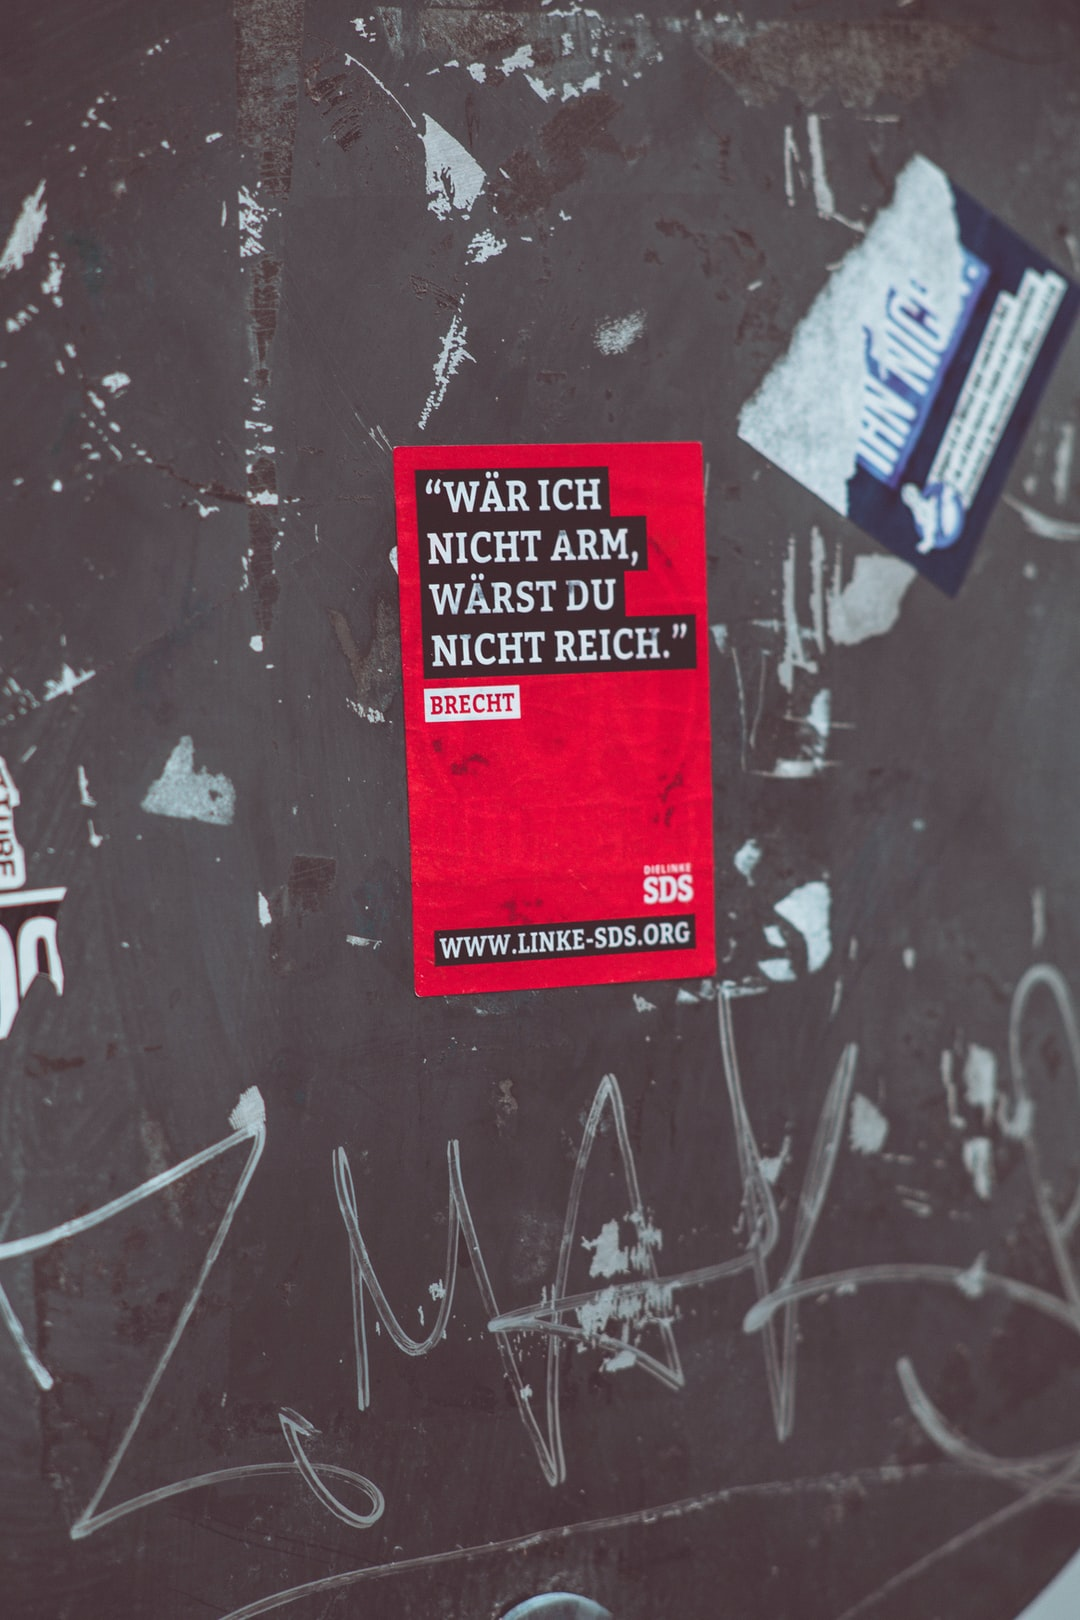 Quote from Bertolt Brecht (Dramatist): If I weren't poor, you wouldn't be rich. (Wäre ich nicht arm, wärst du nicht reich.)